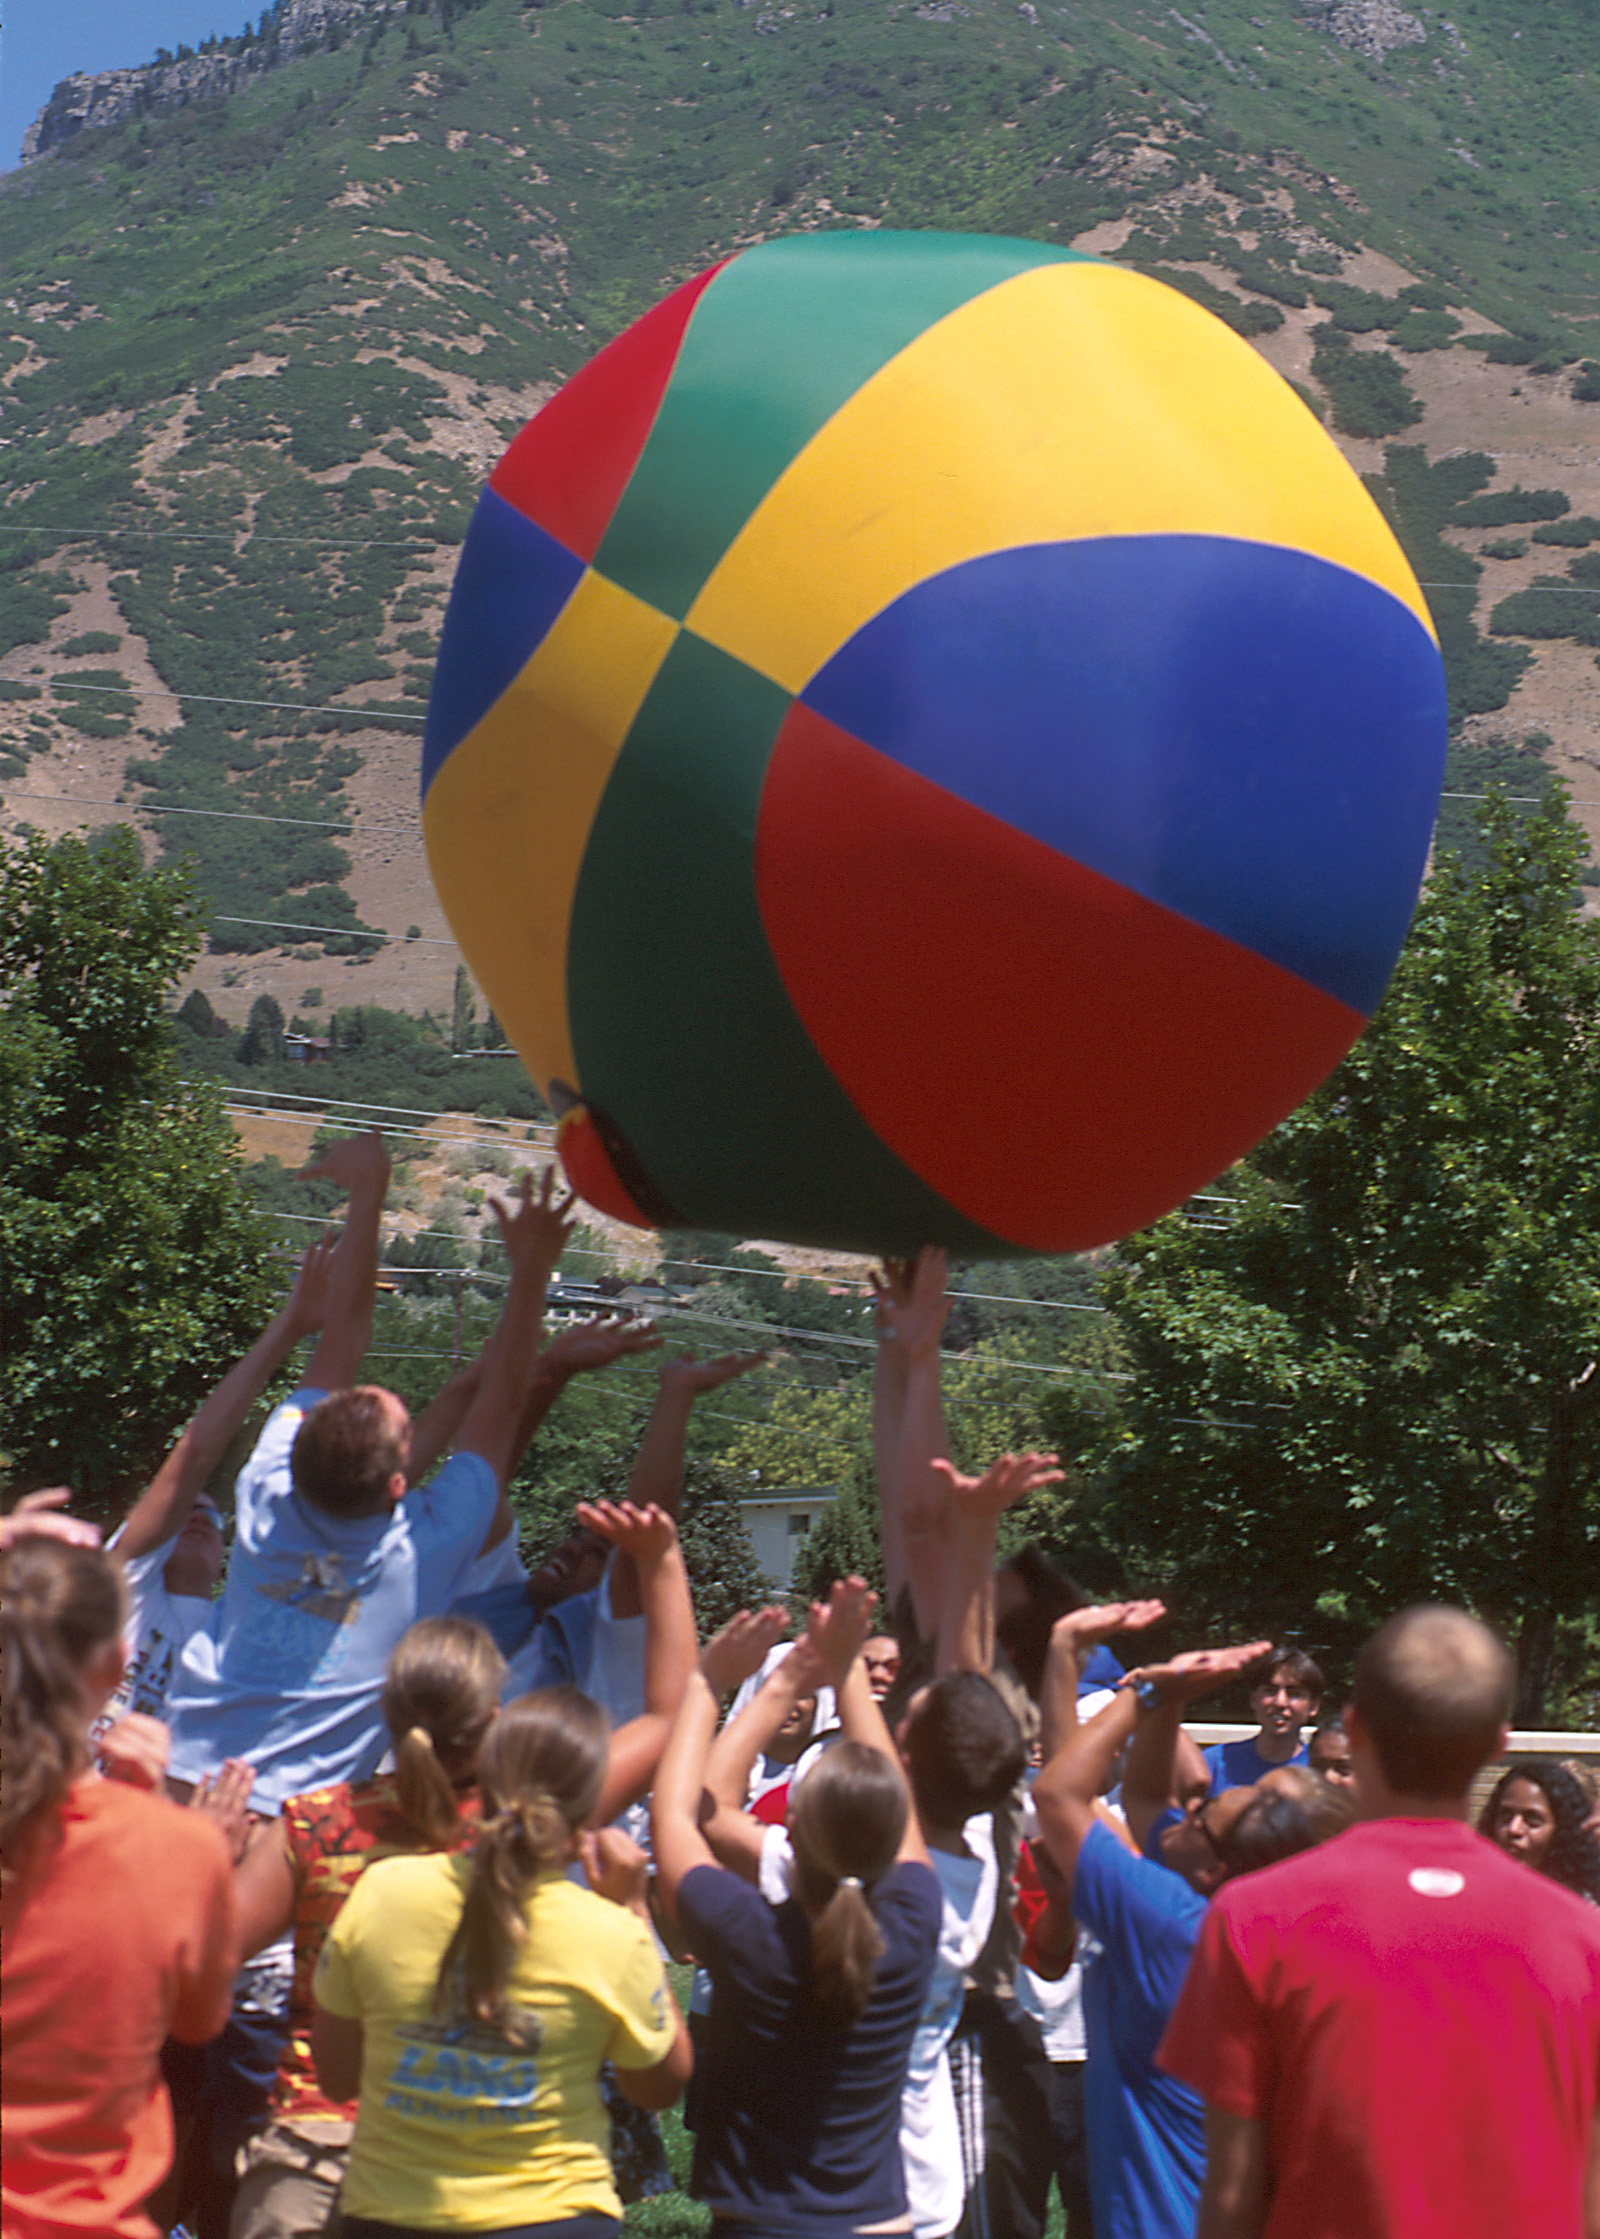 Young people play with a giant ball at Especially for Youth in 2000.